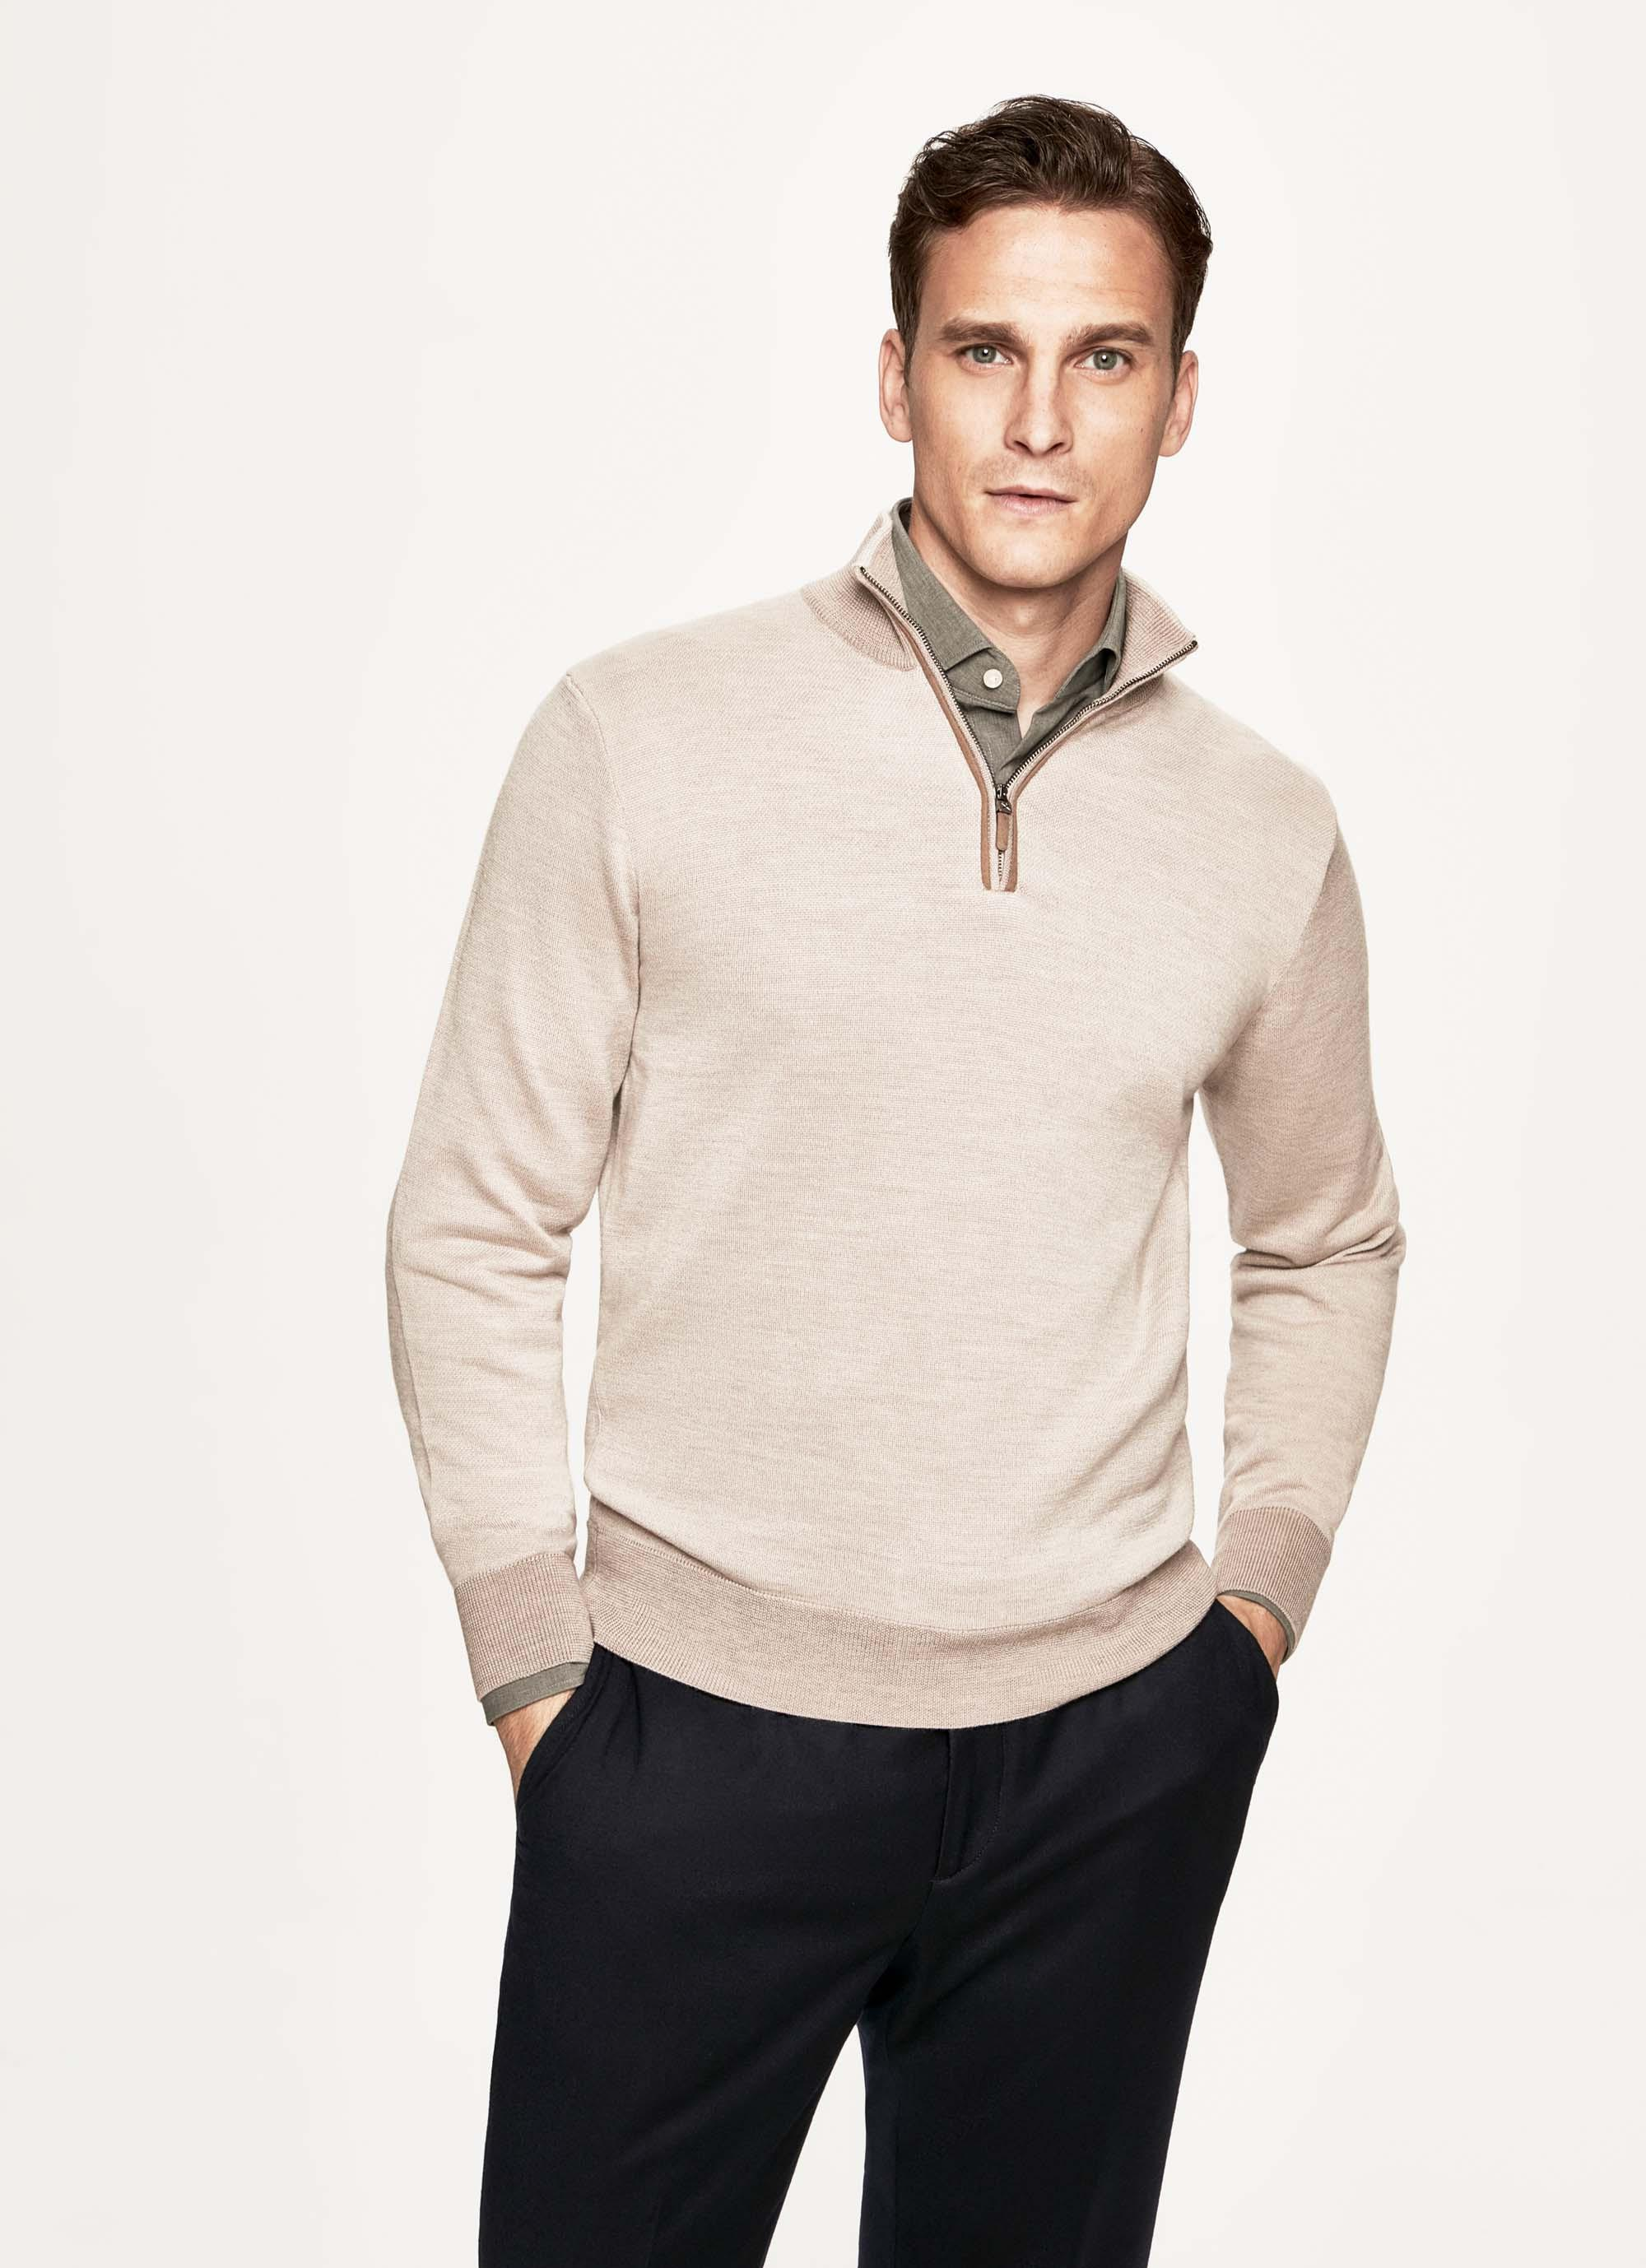 6ef18aff16a7e9 Hackett Textured Knit Wool, Silk And Cashmere Half Zip Sweater in ...